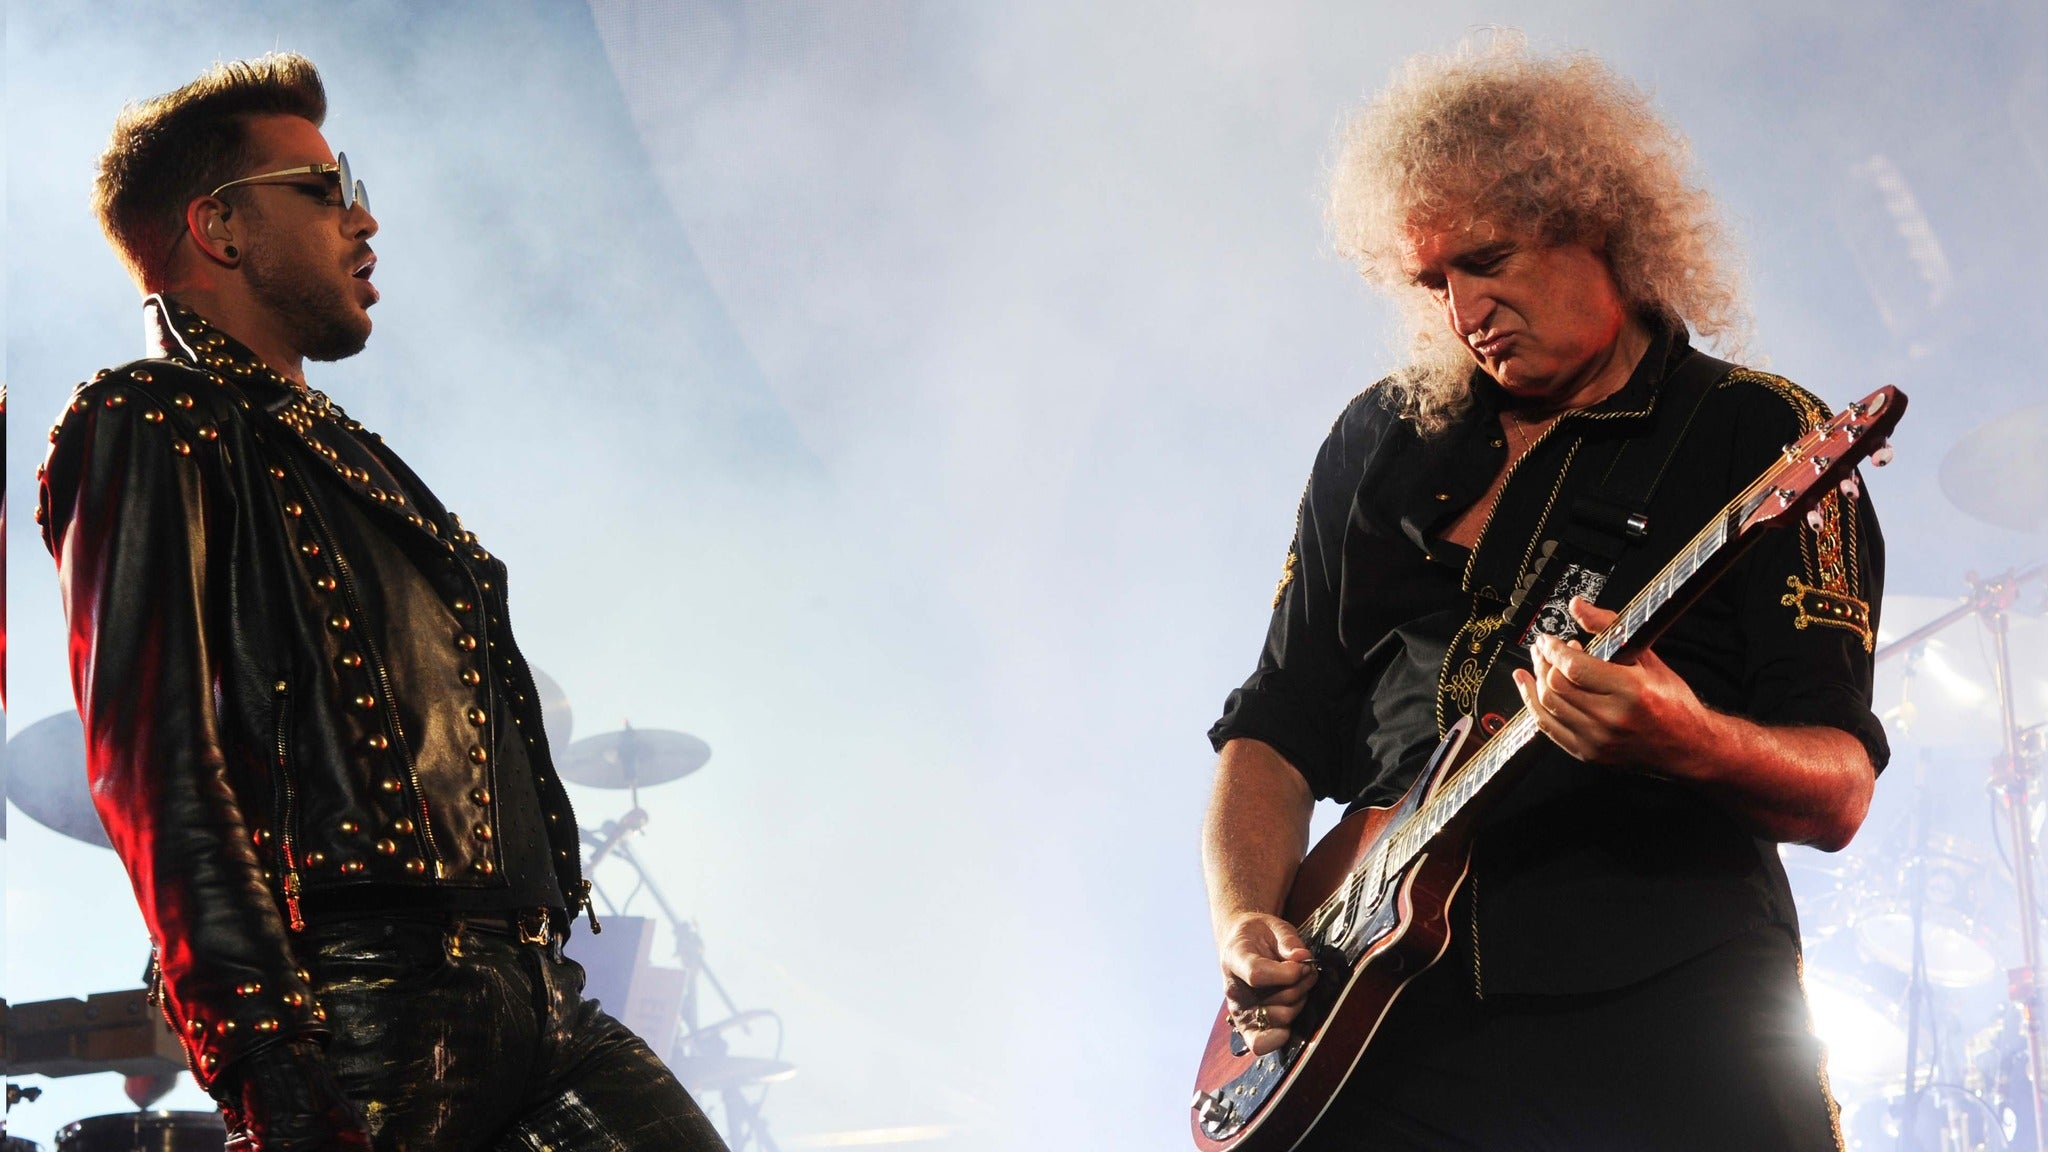 Queen + Adam Lambert: The Rhapsody Tour at The Forum